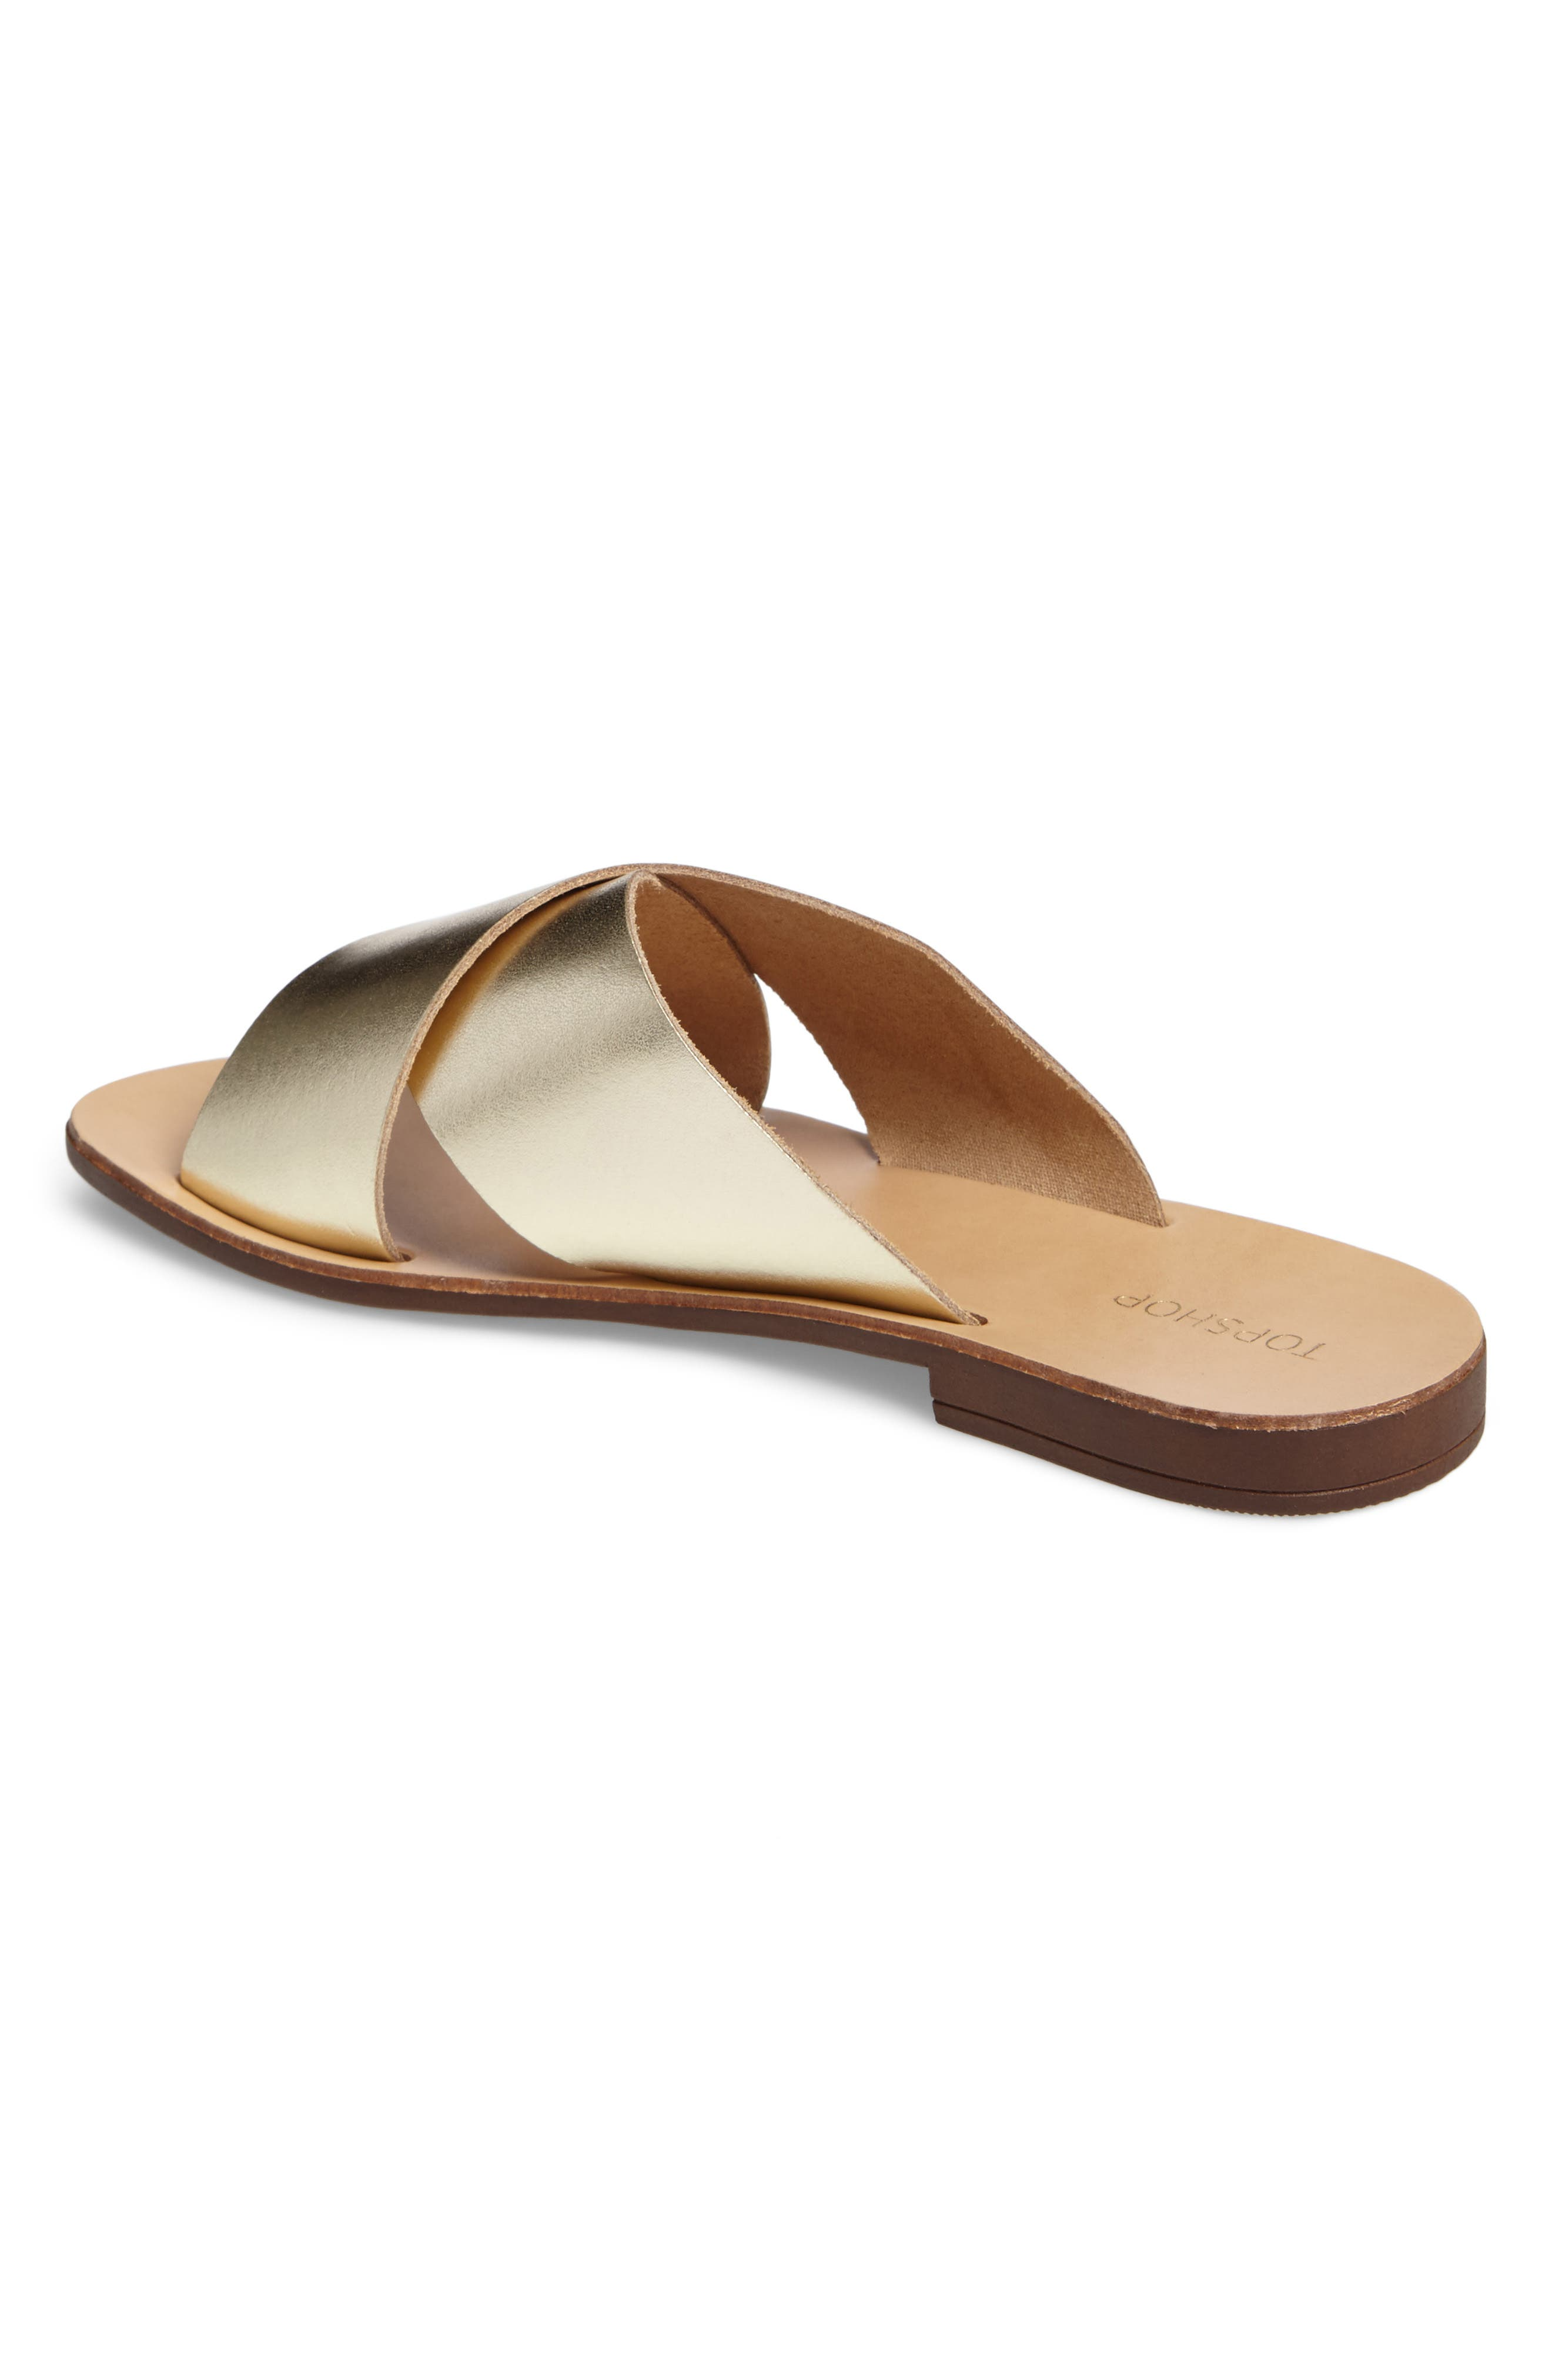 Hawaii Crisscross Sandal,                             Alternate thumbnail 15, color,